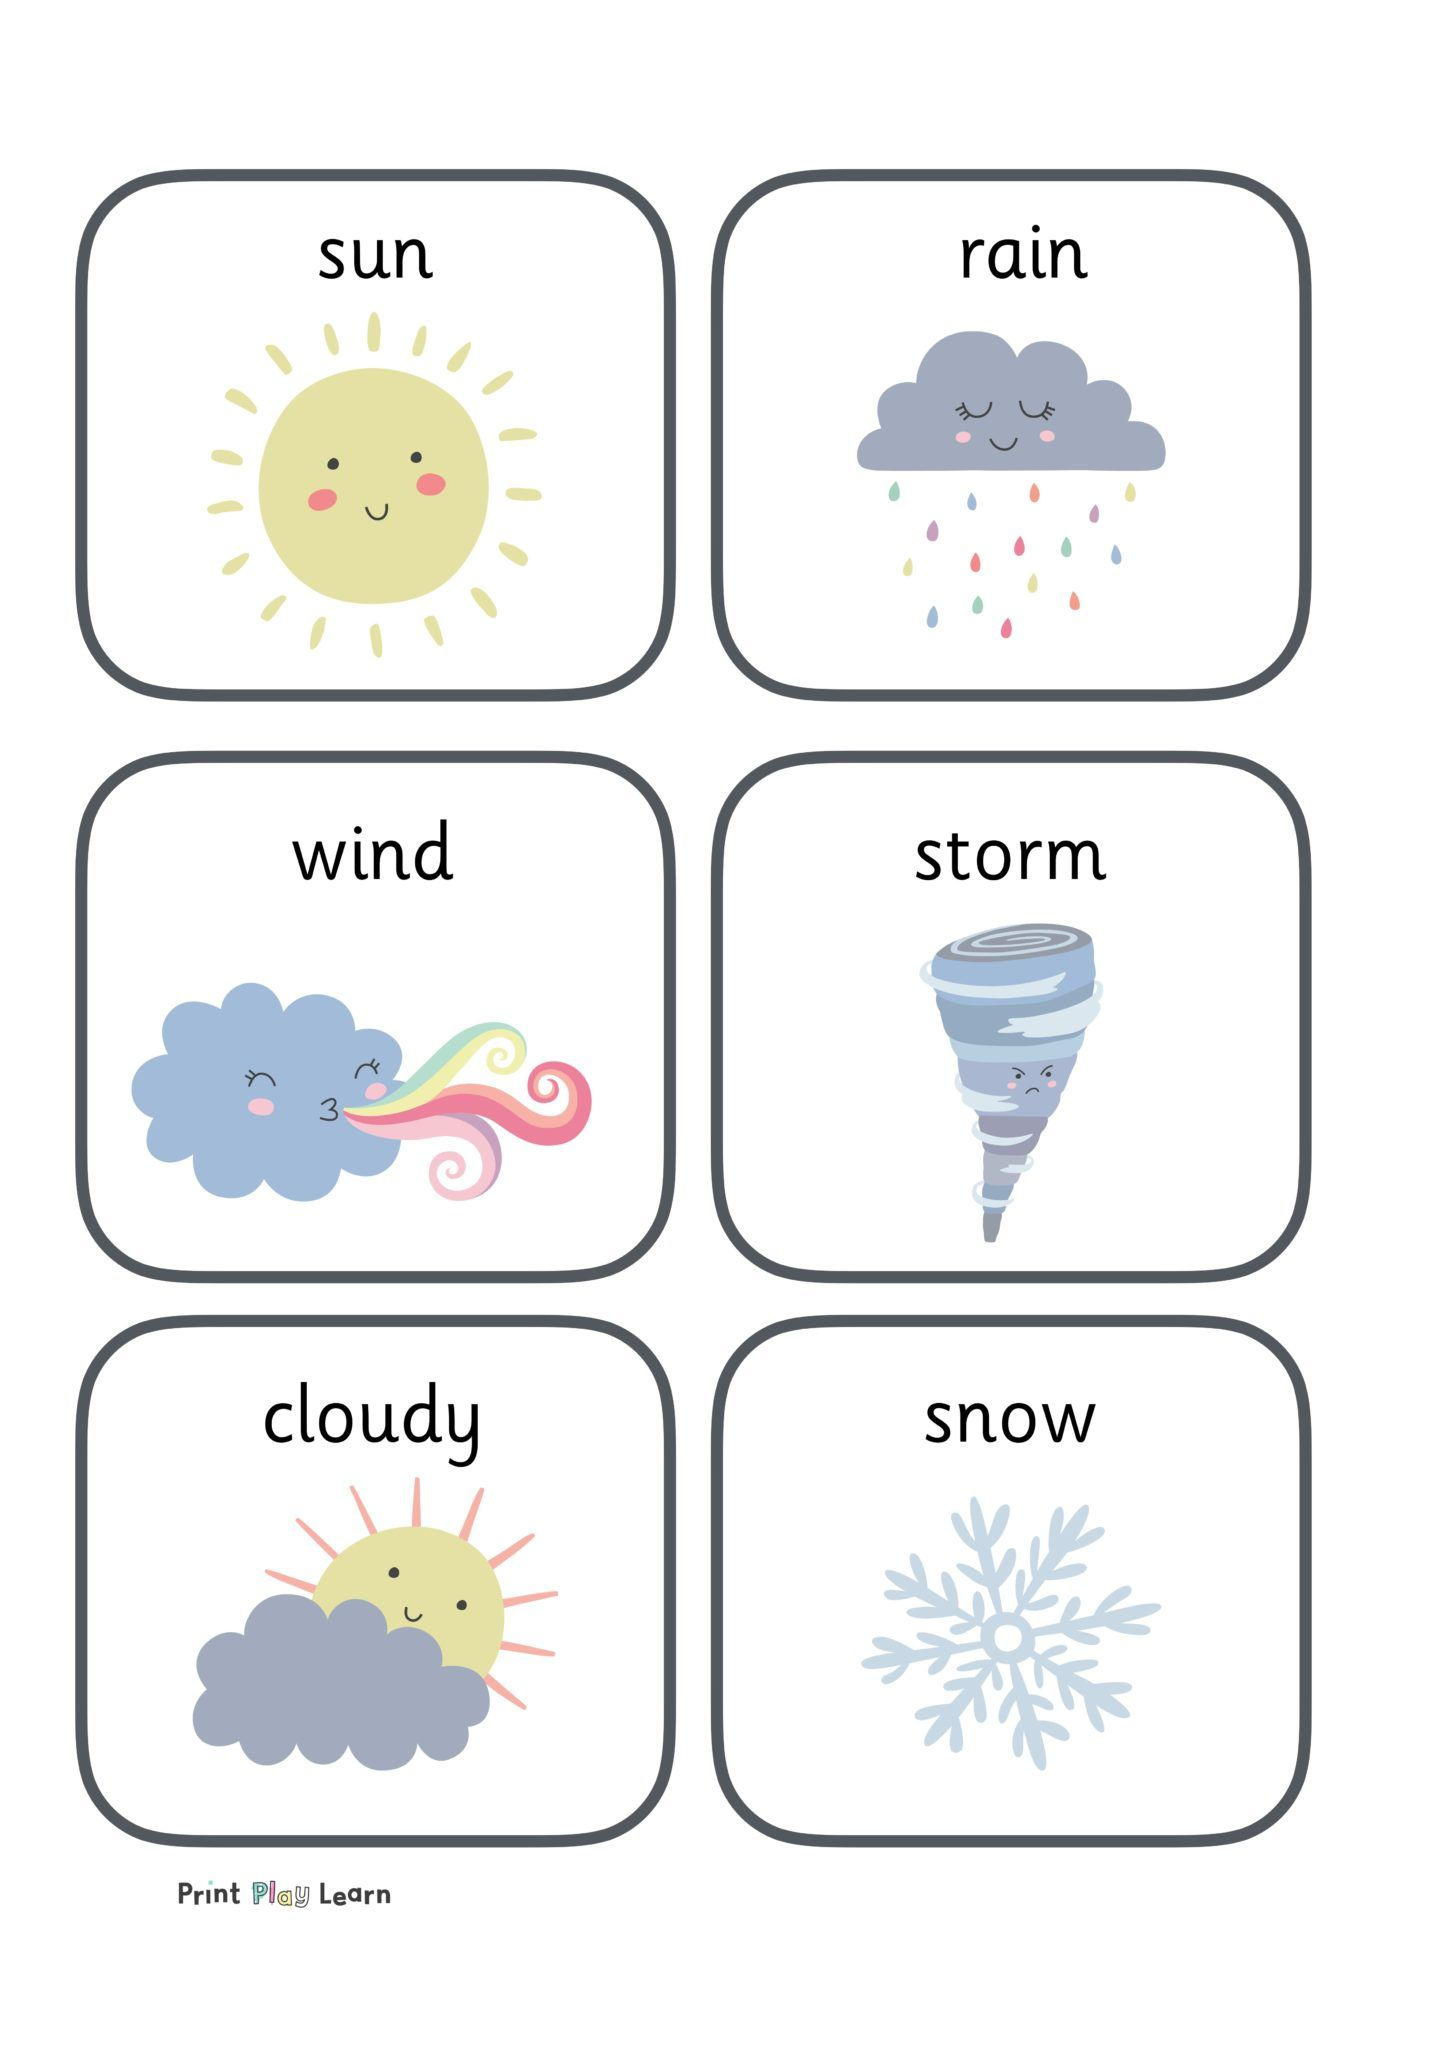 Weather Flashcards - Free Teaching Resources - Print Play ...